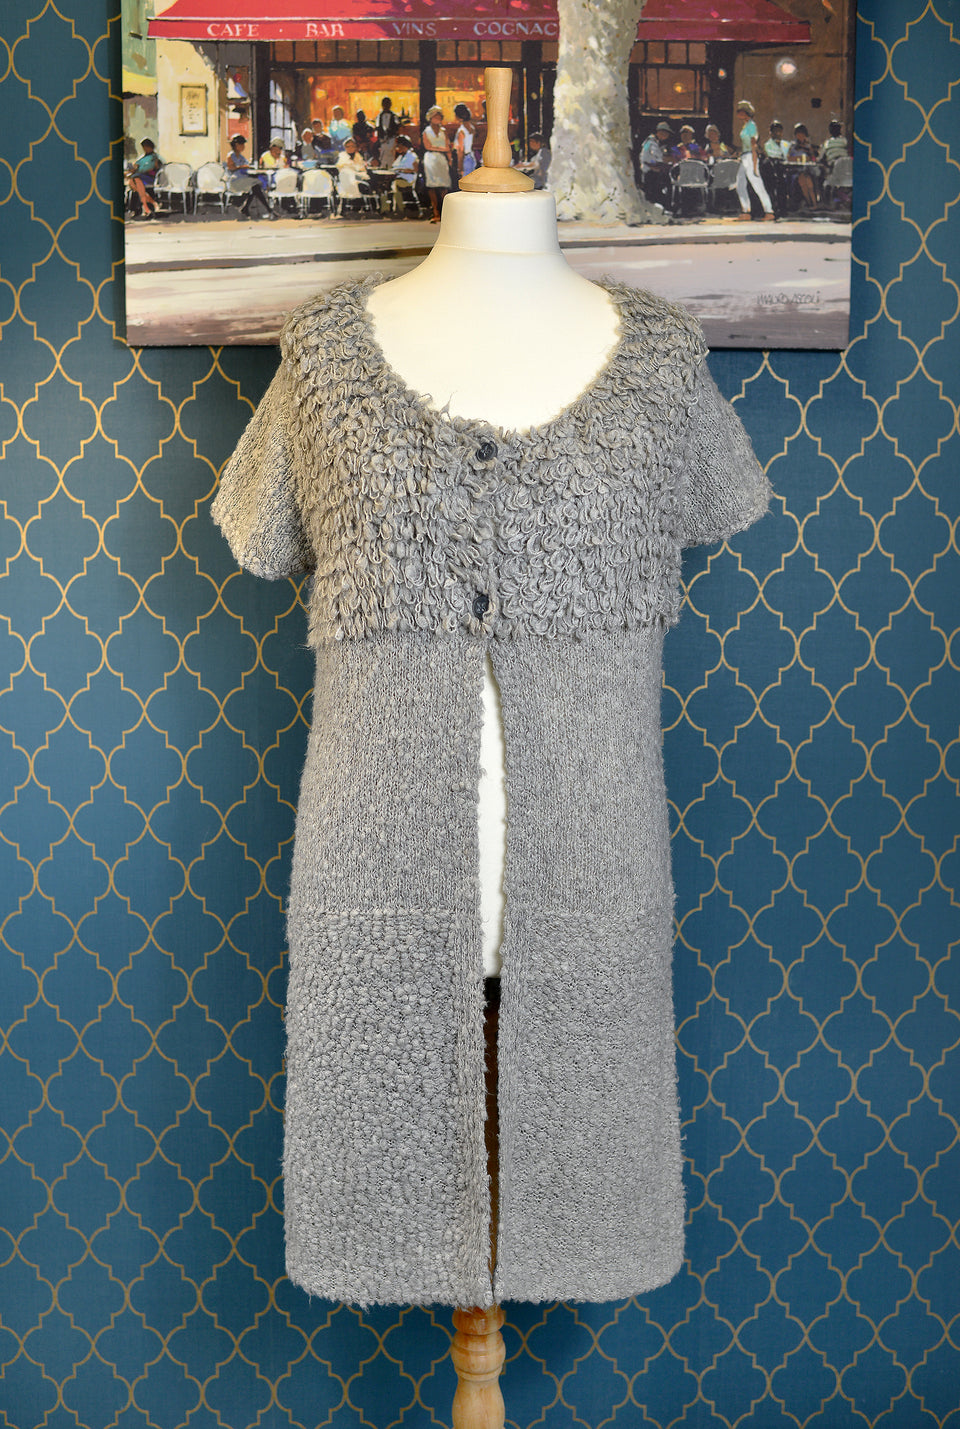 SANDWICH Women's Grey Long Cardigan Dress. Size L. Pre-loved.